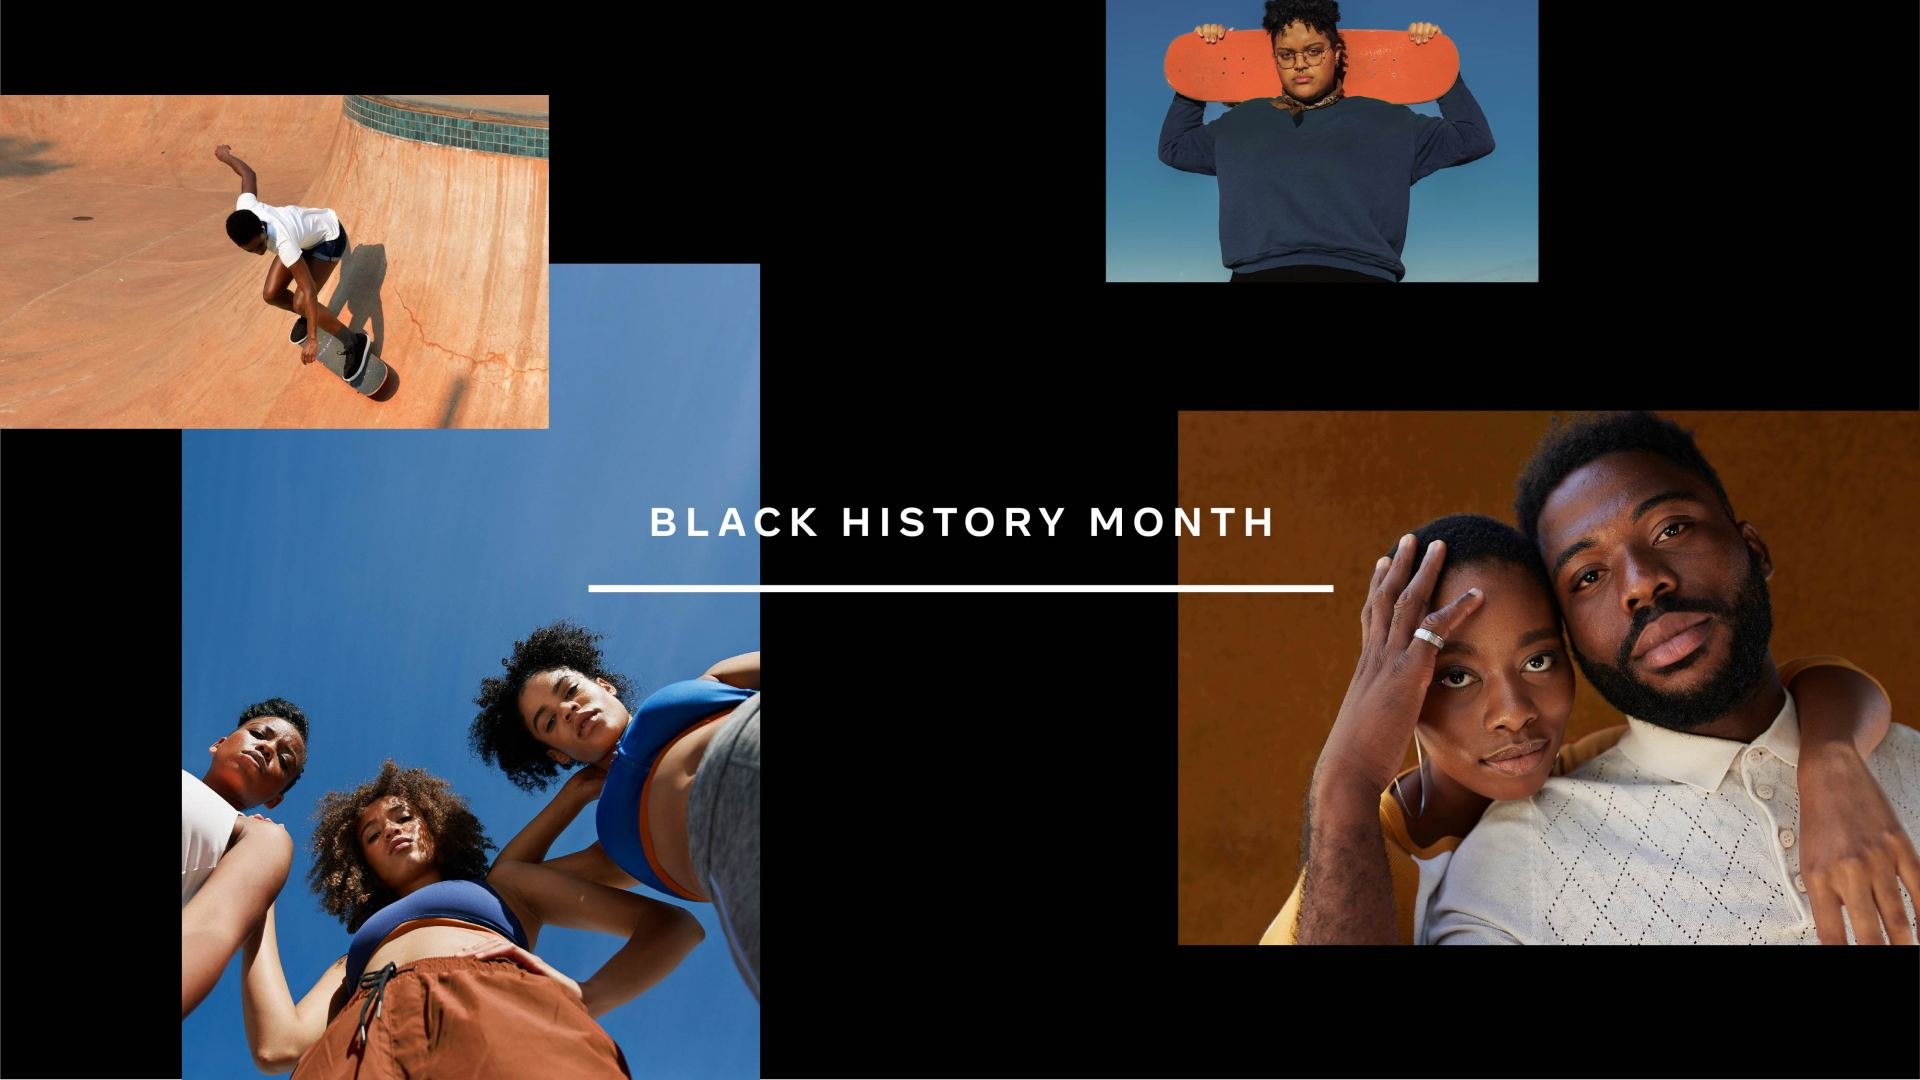 Facebook celebrating Black History Month